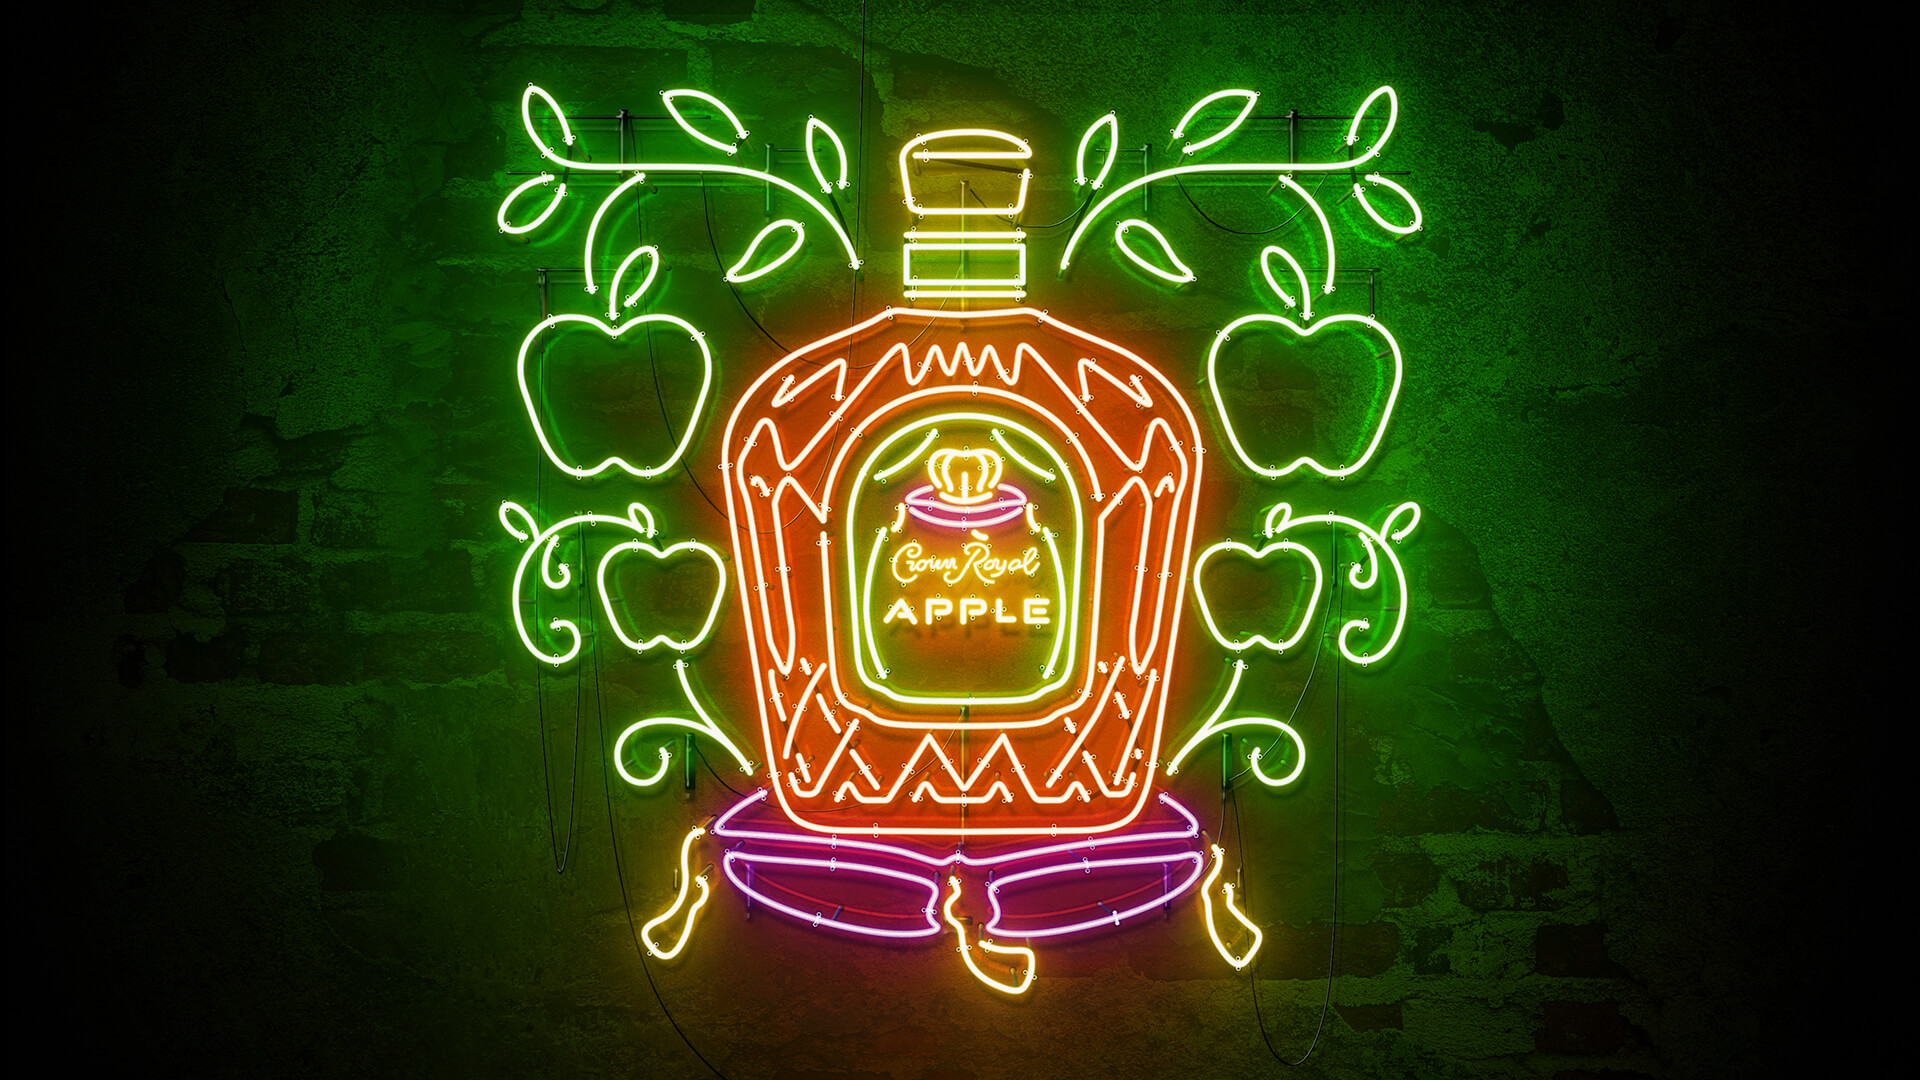 Crown Royal Scene Neon